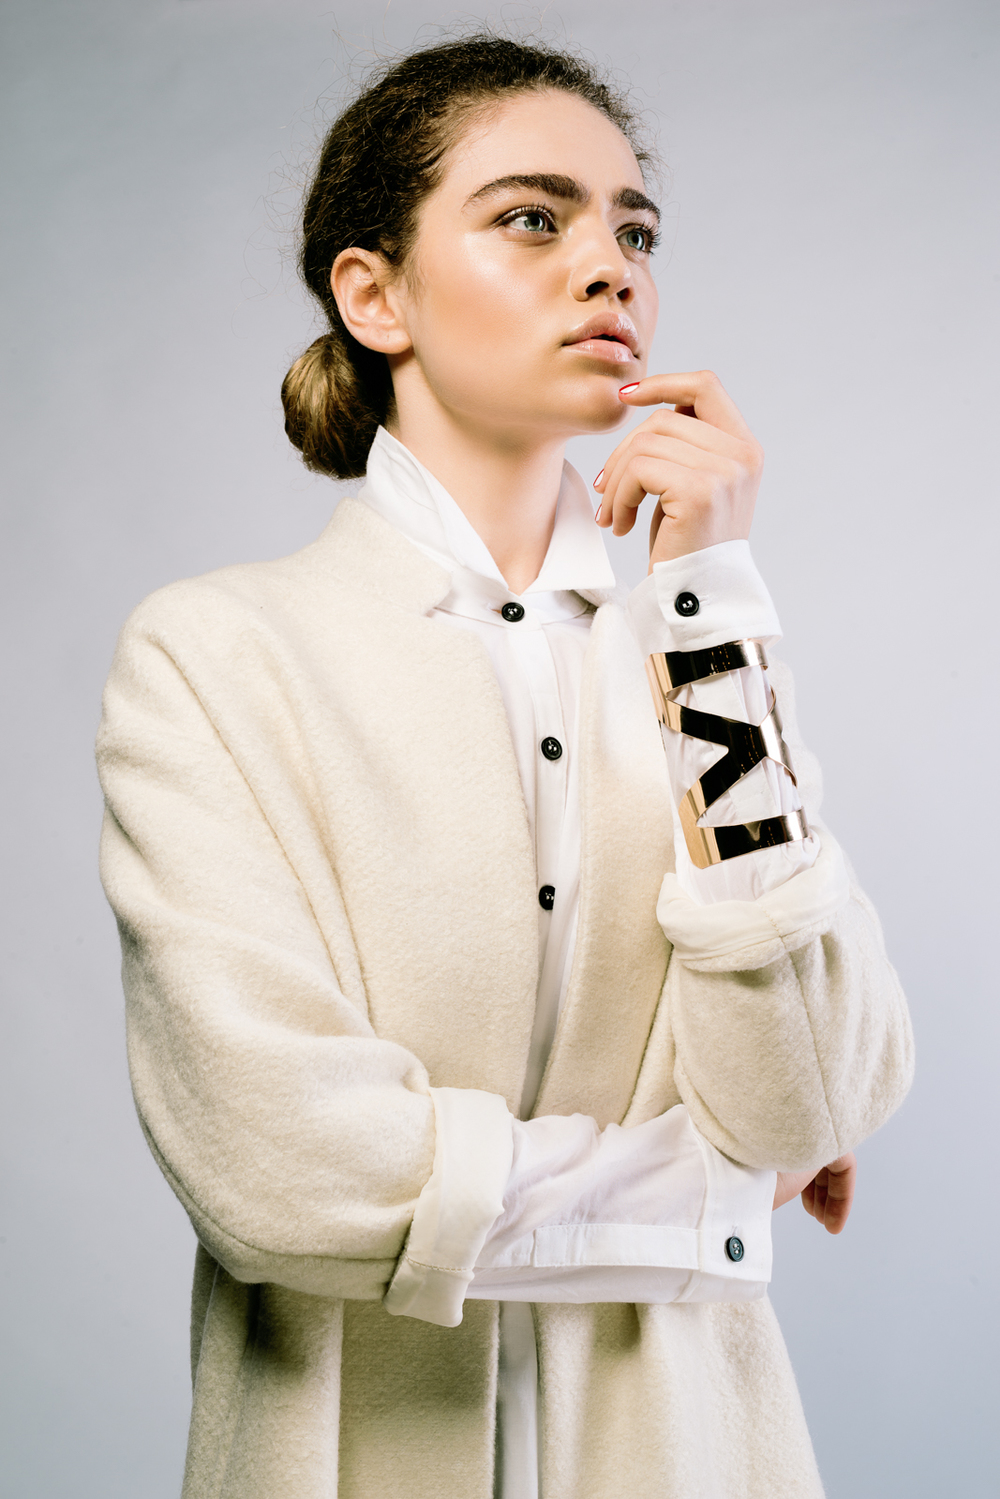 On model: Sir & Madame Woven Shirt in white, vintage coat and bracelet.